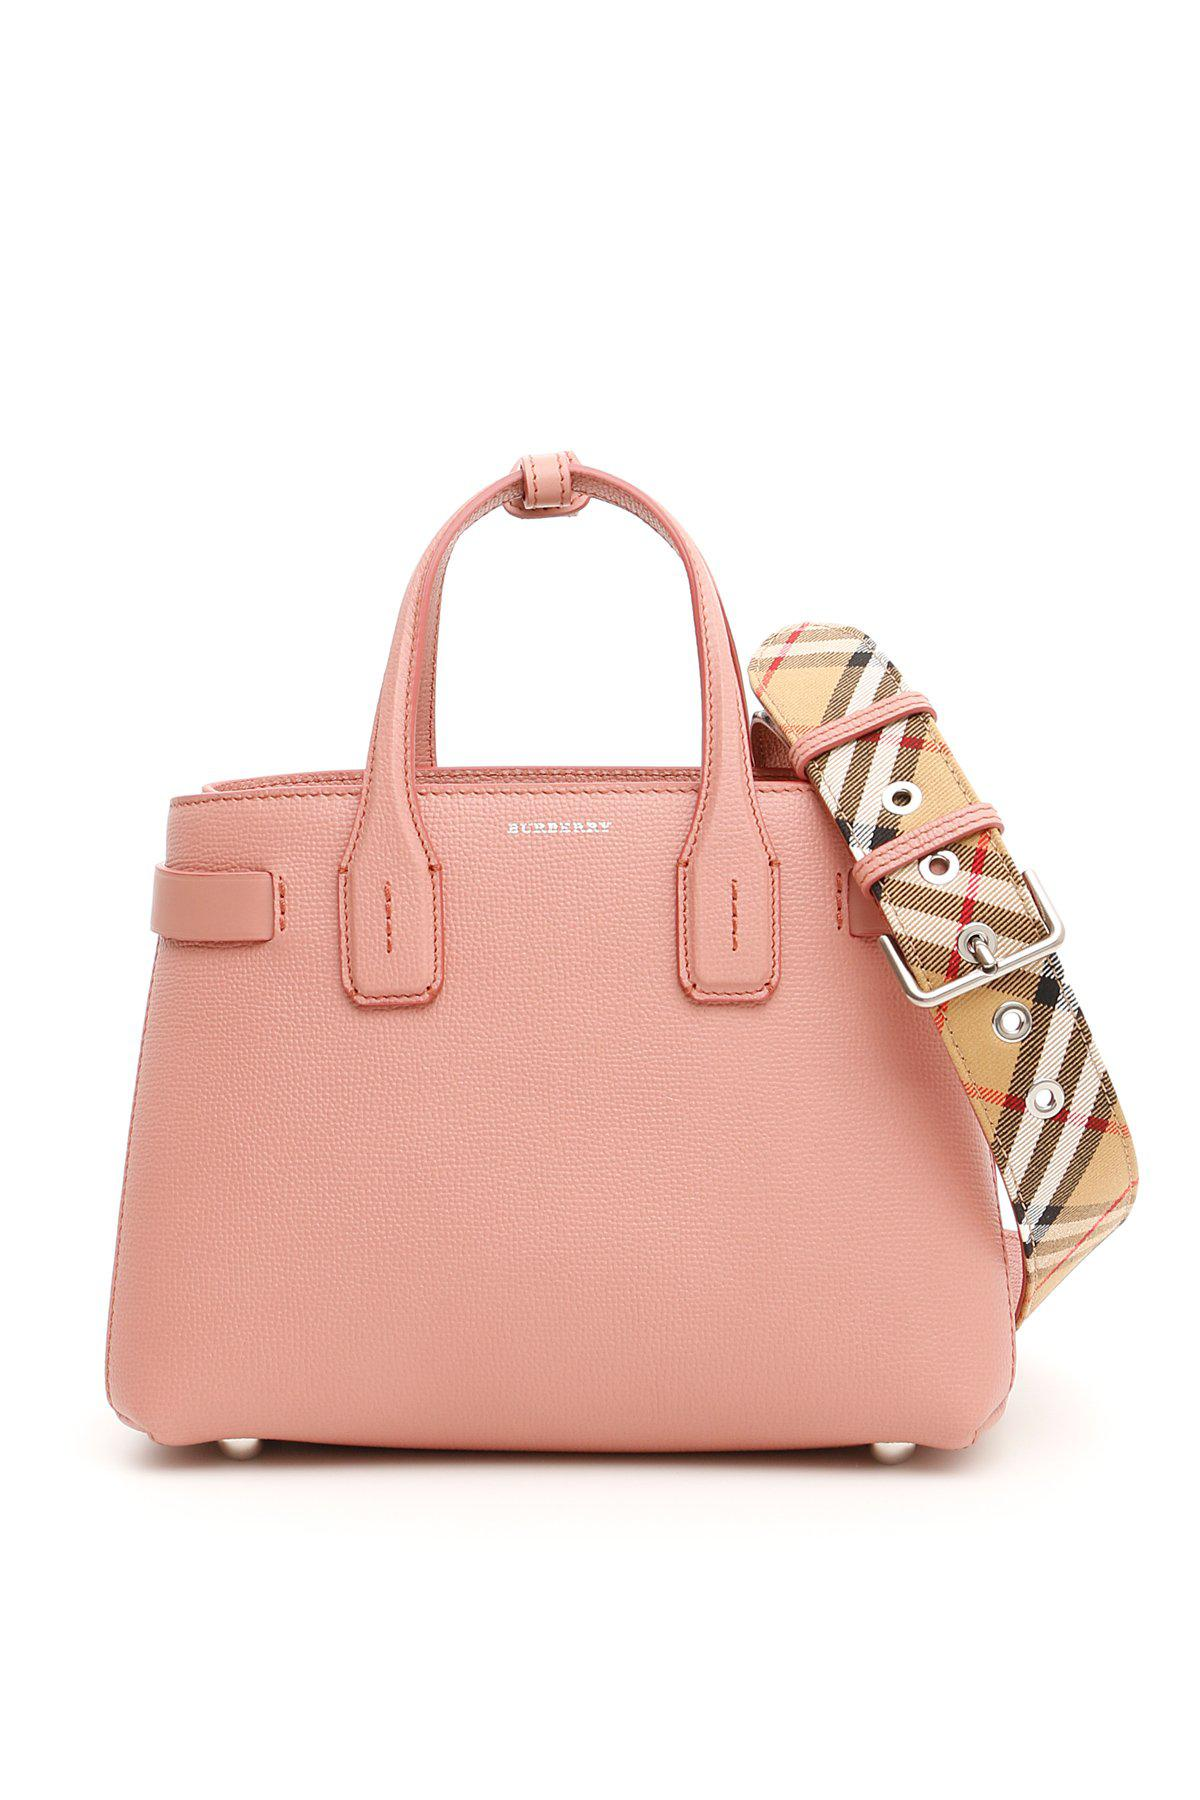 917d0ddf1c Lyst - Burberry Banner Tote Bag in Pink